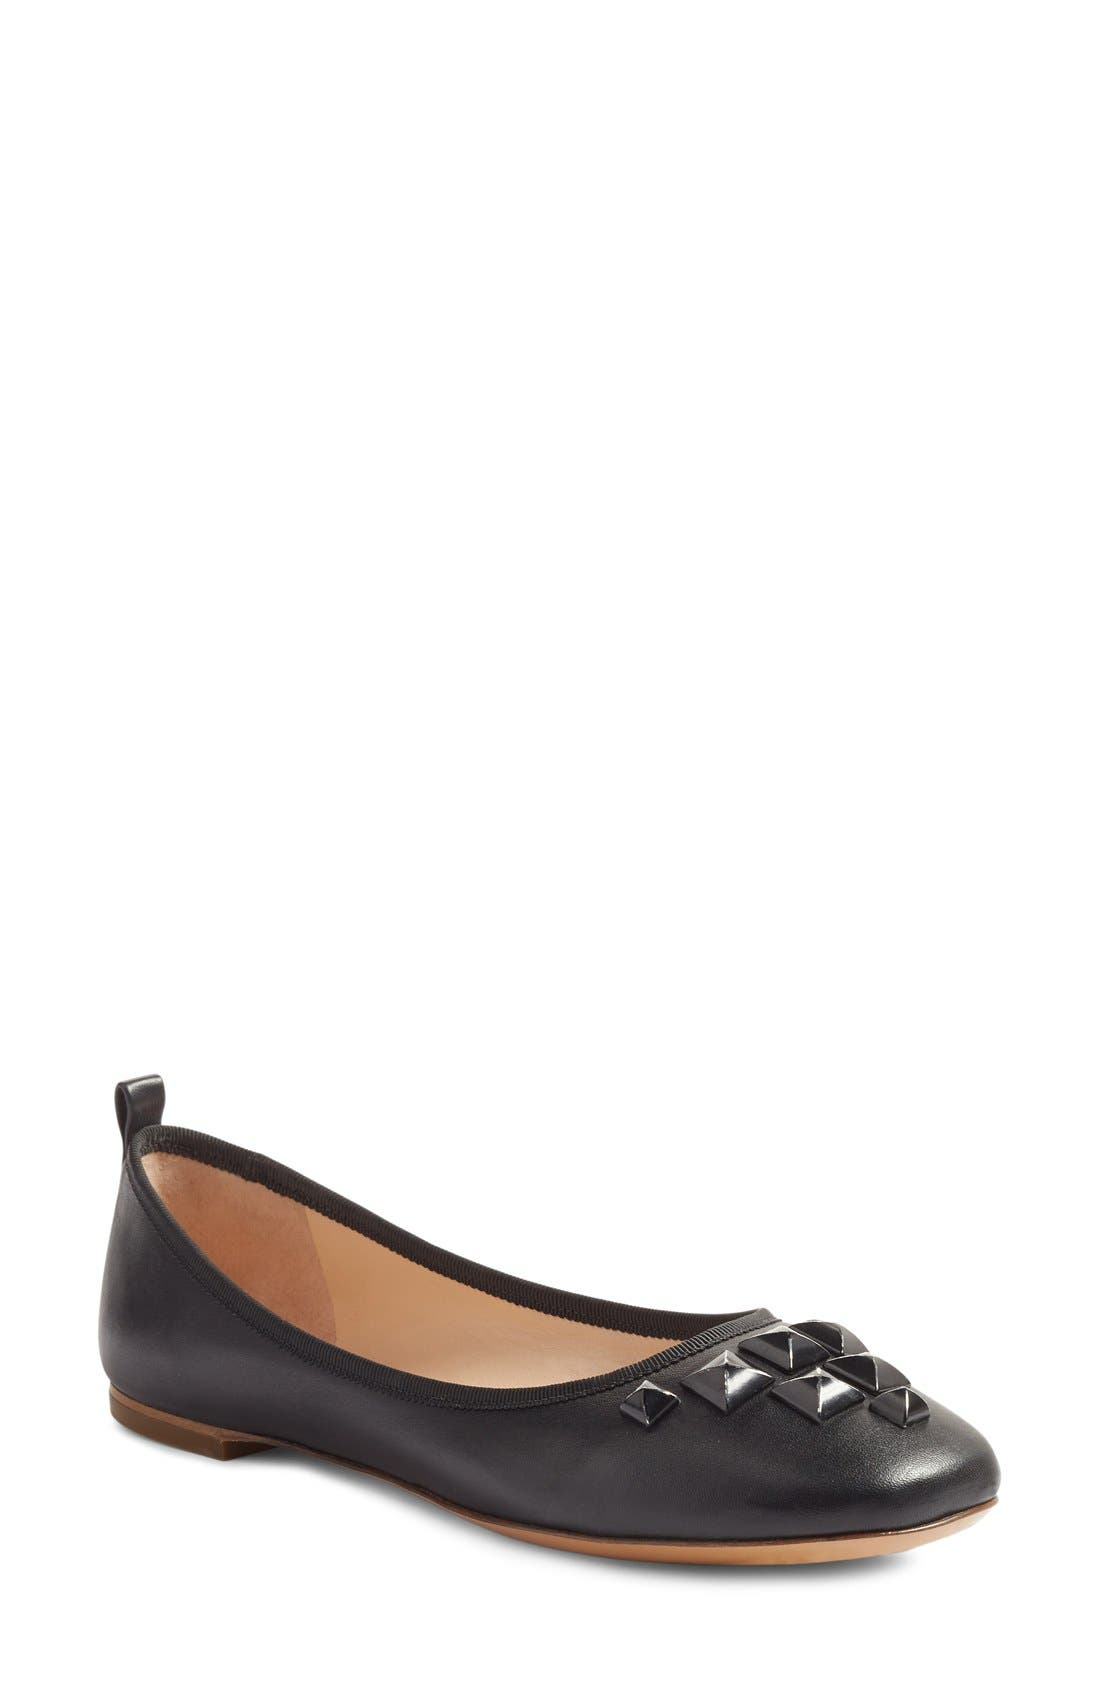 Cleo Studded Ballet Flat,                             Main thumbnail 1, color,                             001